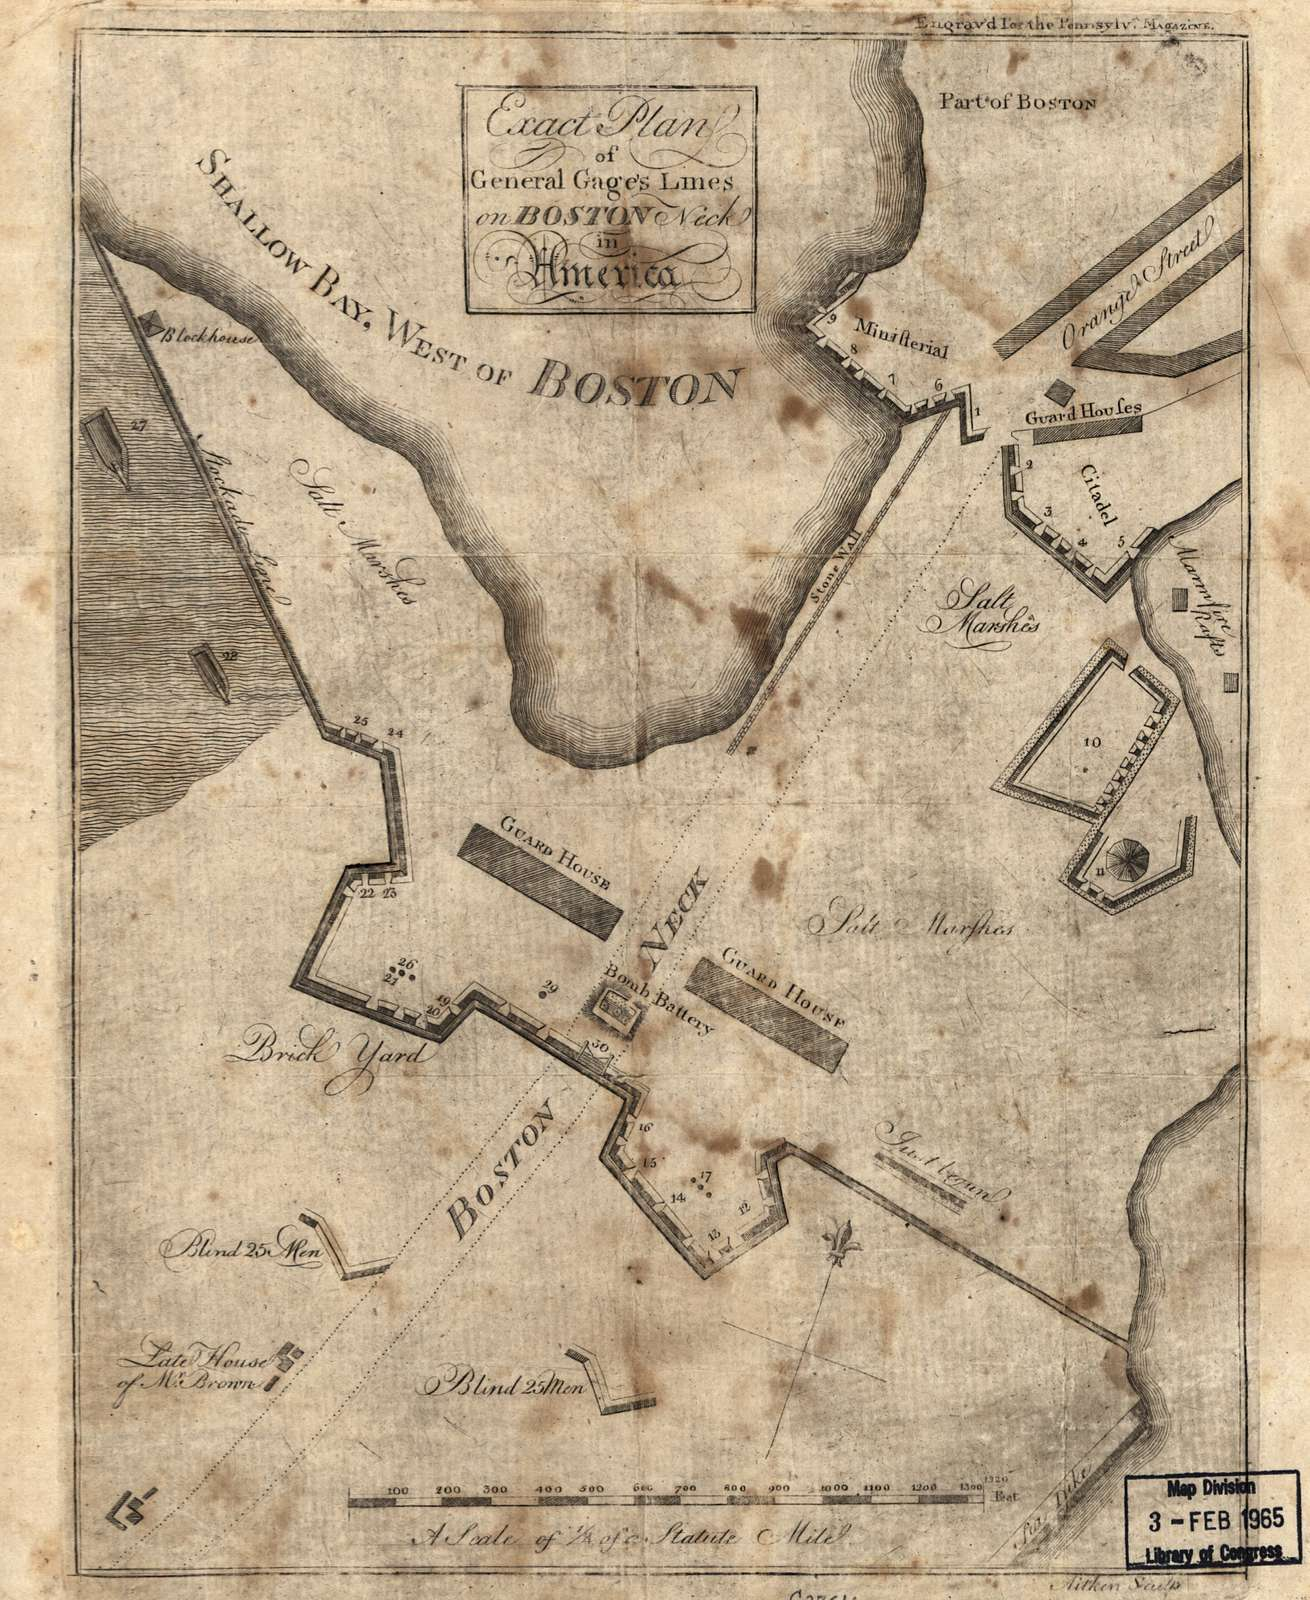 Exact plan of General Gage's lines on Boston Neck in America.